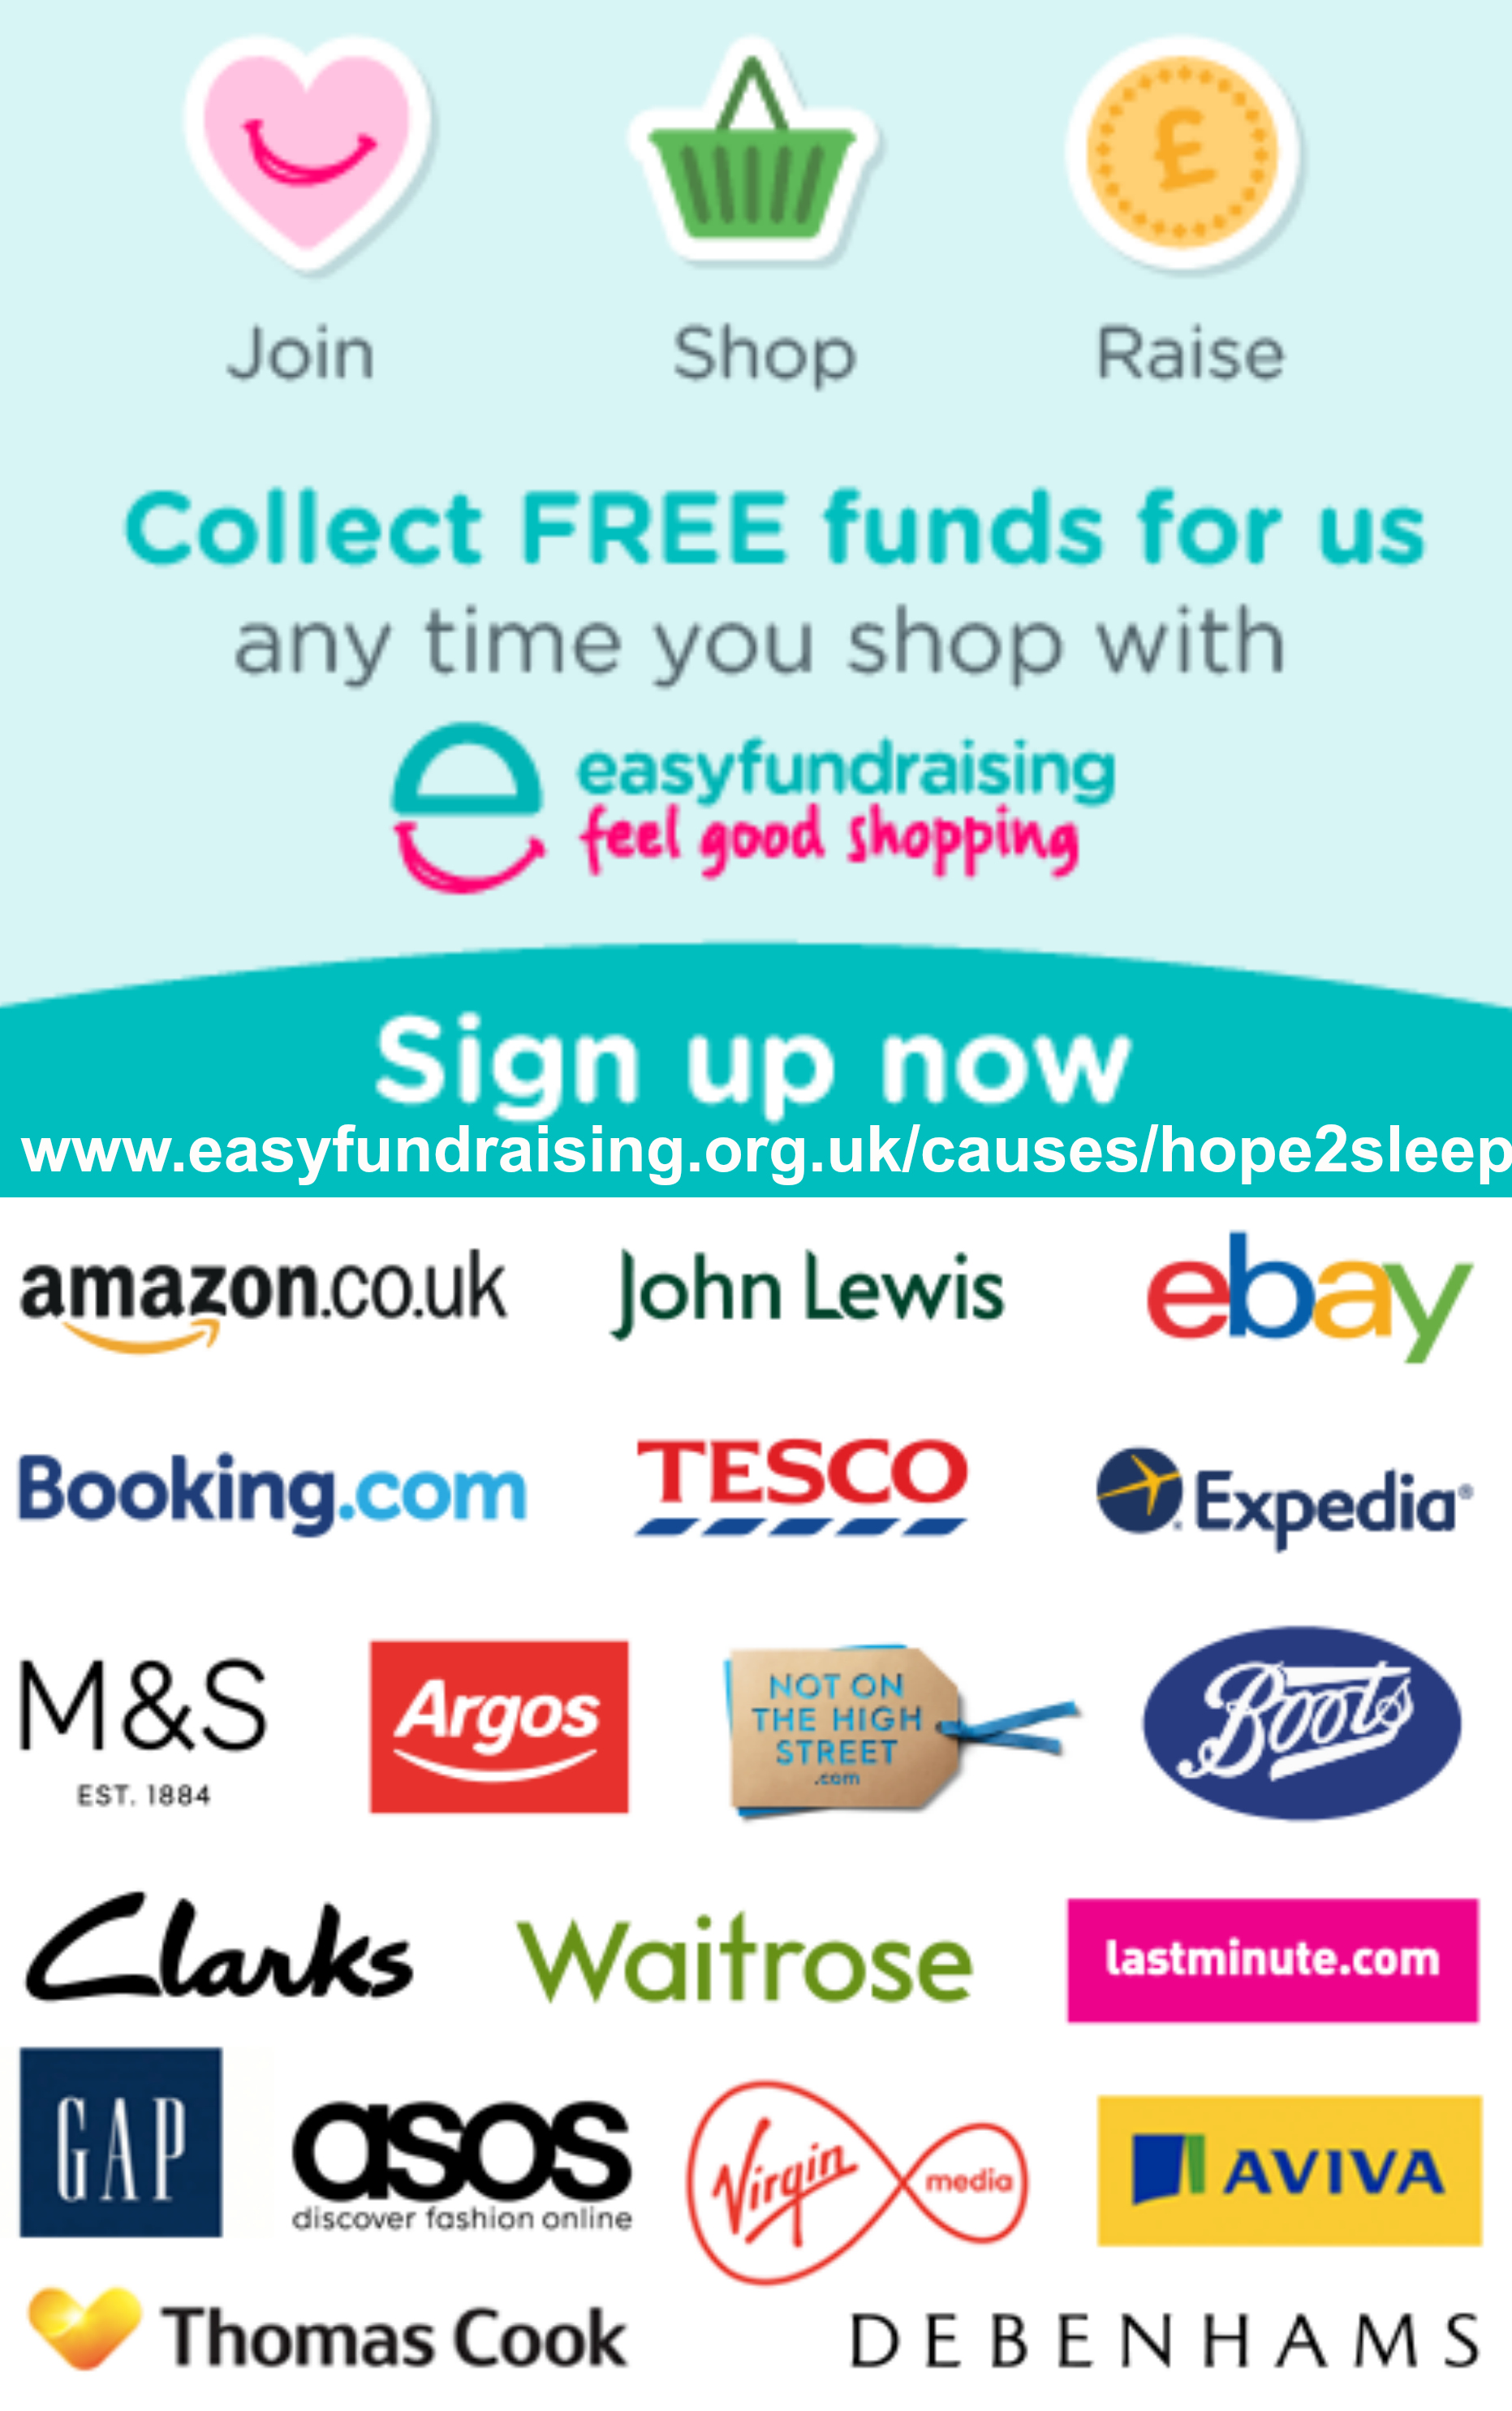 https://www.easyfundraising.org.uk/causes/hope2sleep/